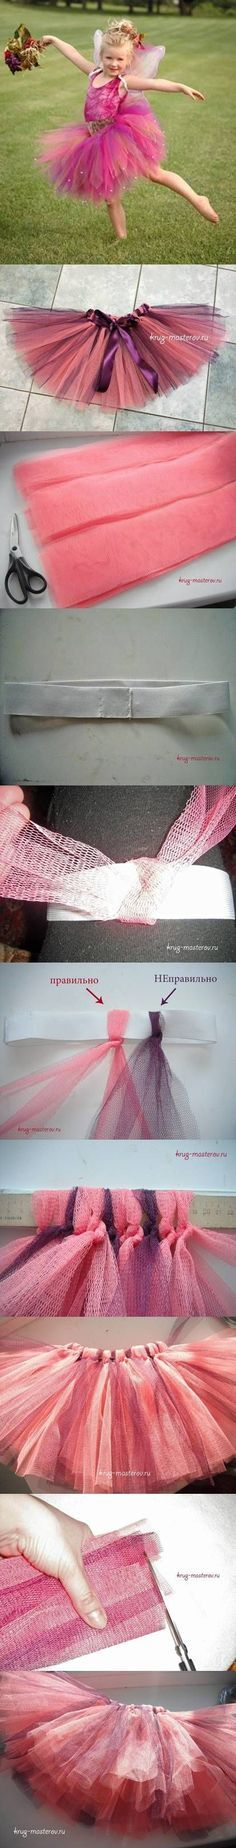 DIY Tutu Skirt for Girl Under 30 Minutes DIY Projects /...